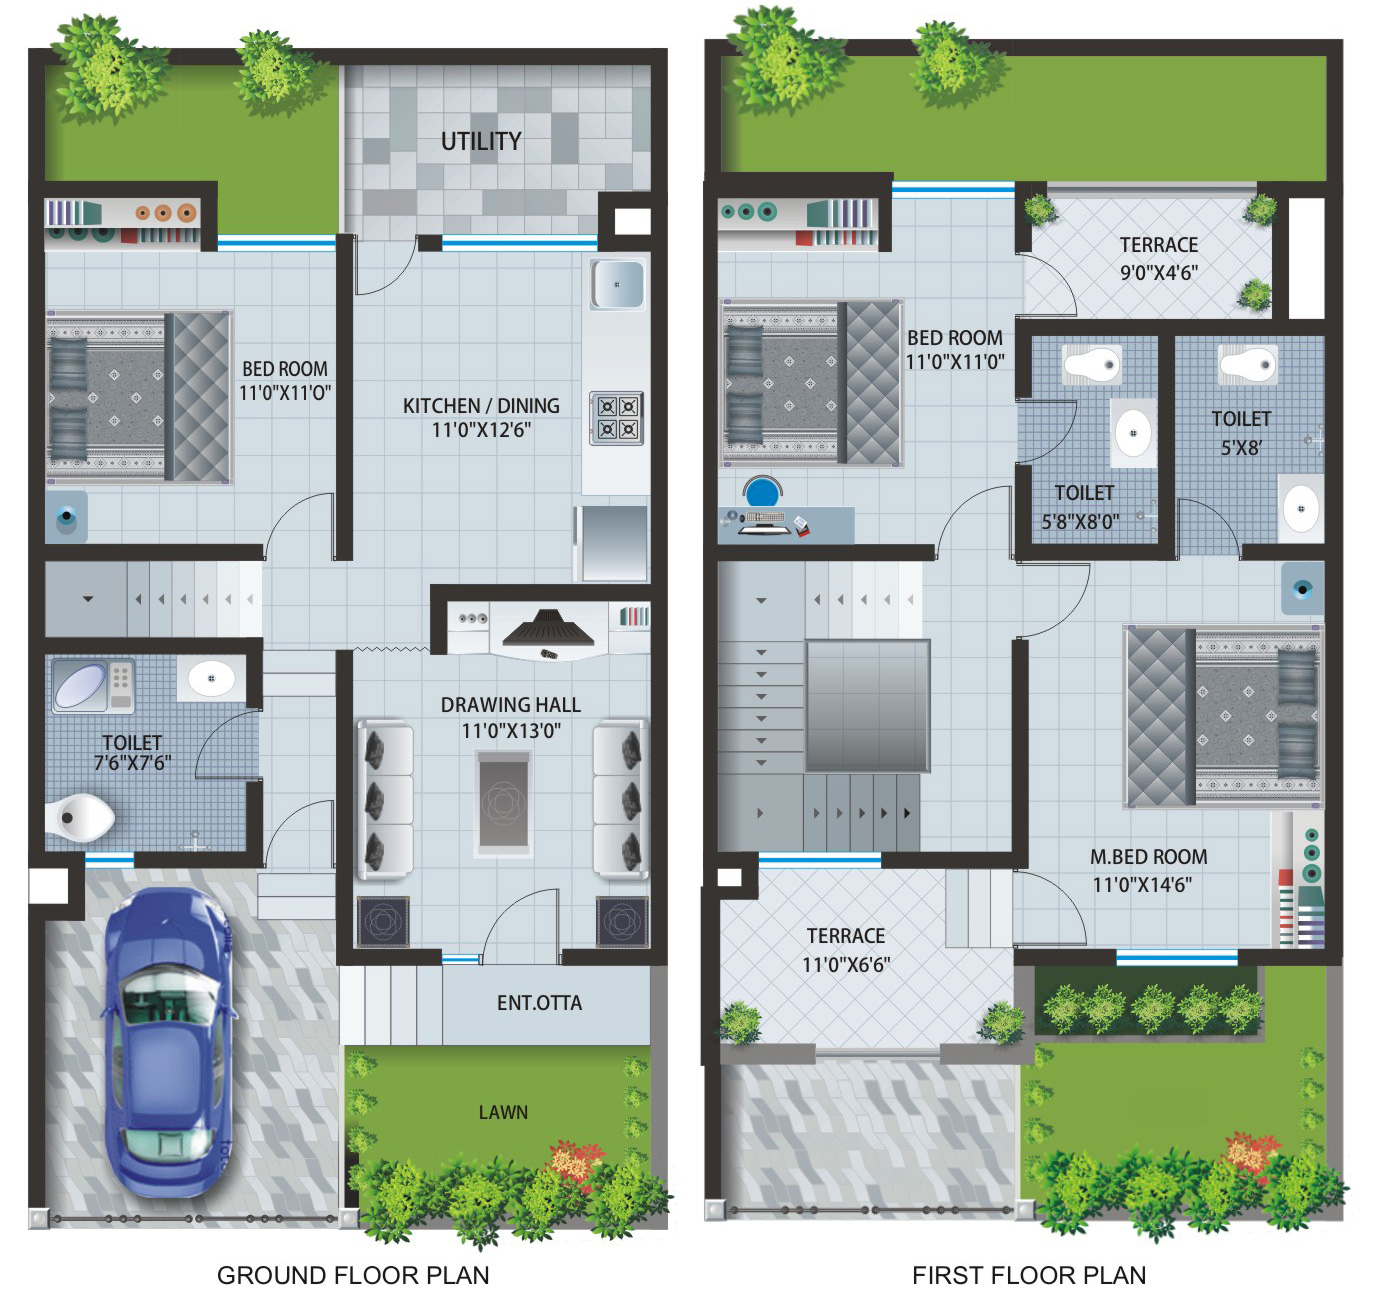 Row house layout plan patel pride aurangabad for Building design plans